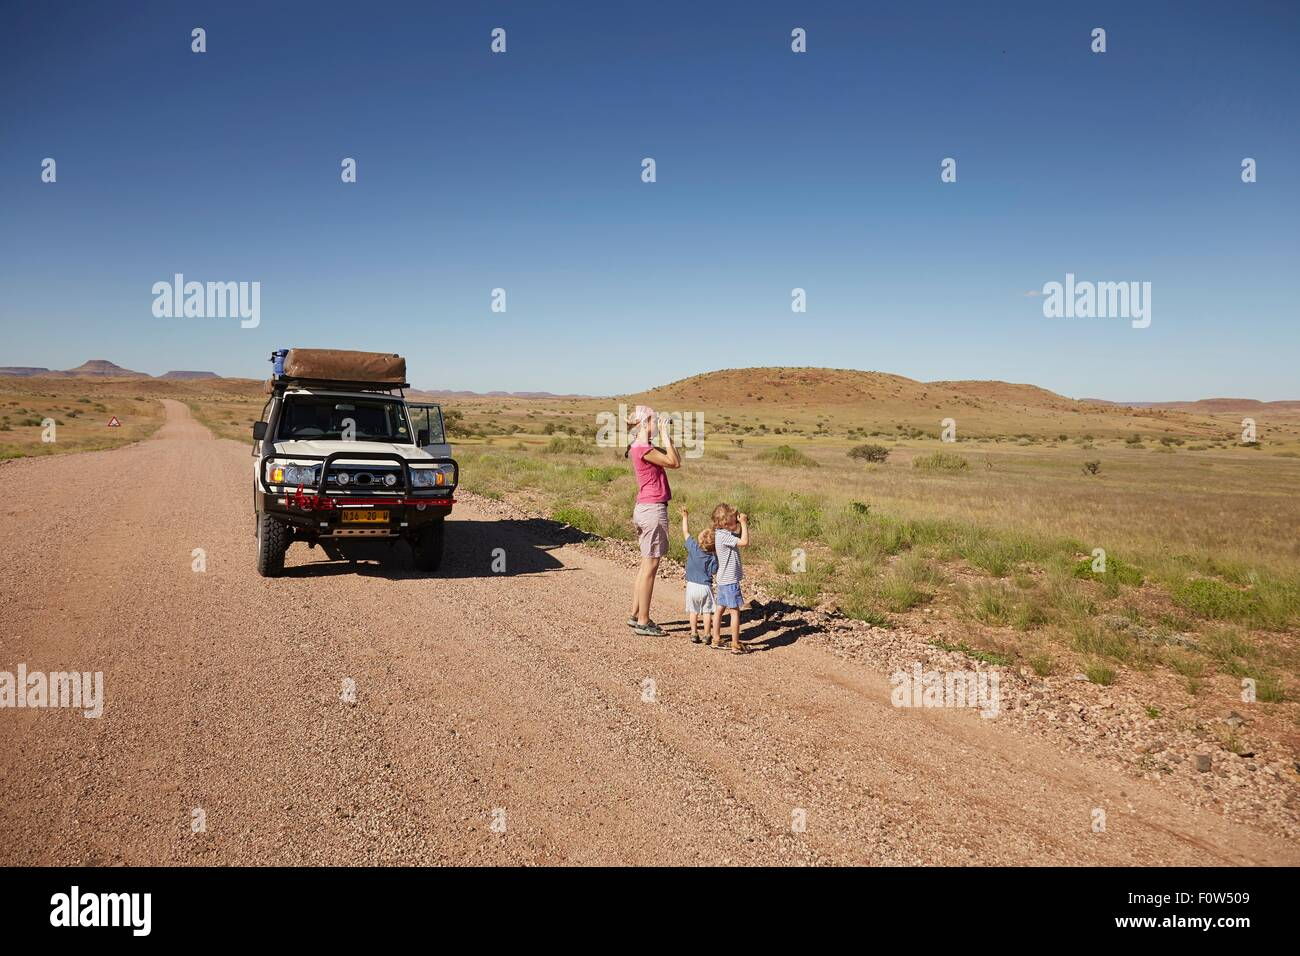 Off road vehicle parked while mother and children look at view, Sesfontein, Kaokoland, Namibia - Stock Image